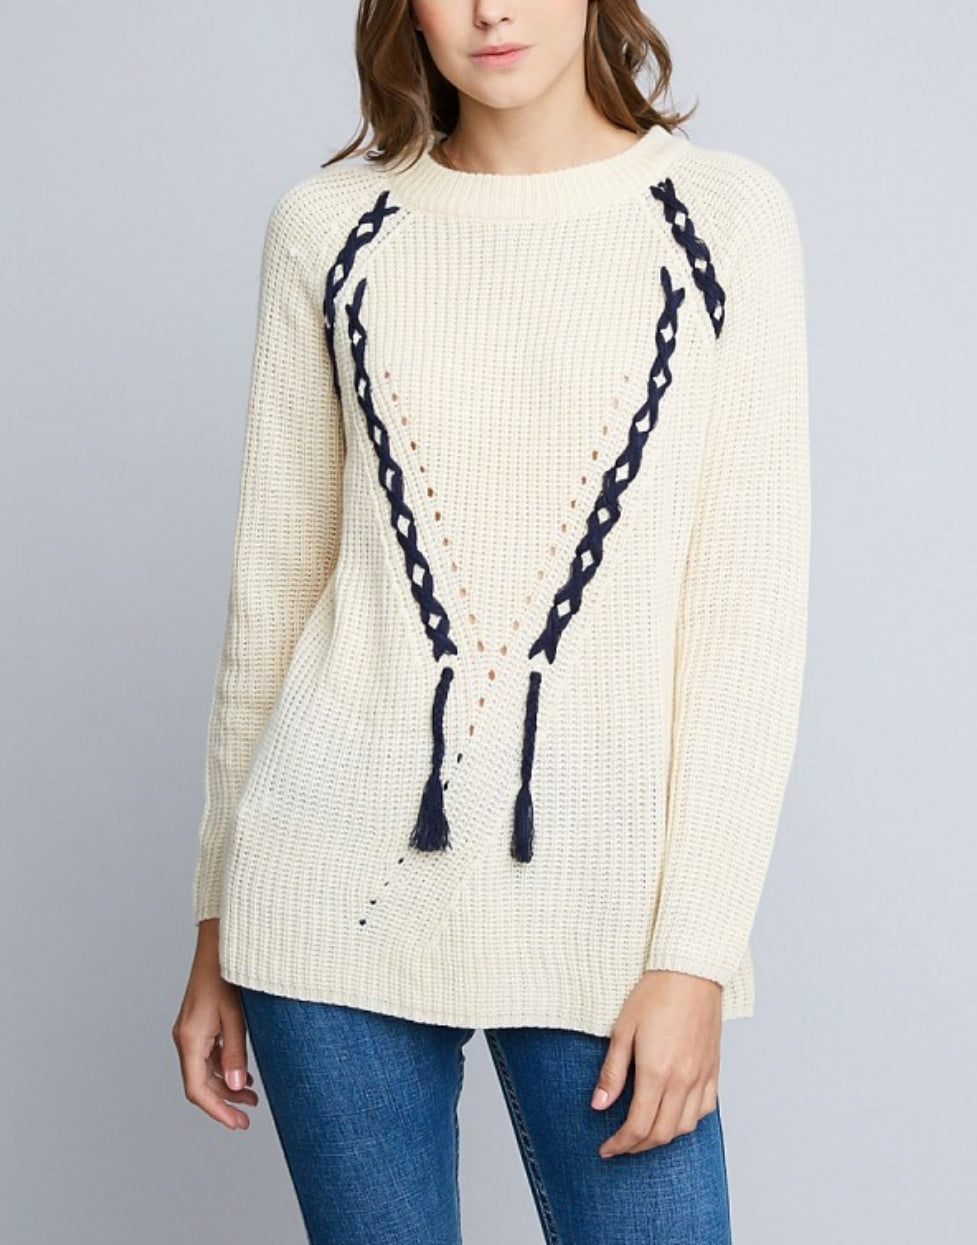 5521613f16 Ladies Lace Up Open Knit Sweater